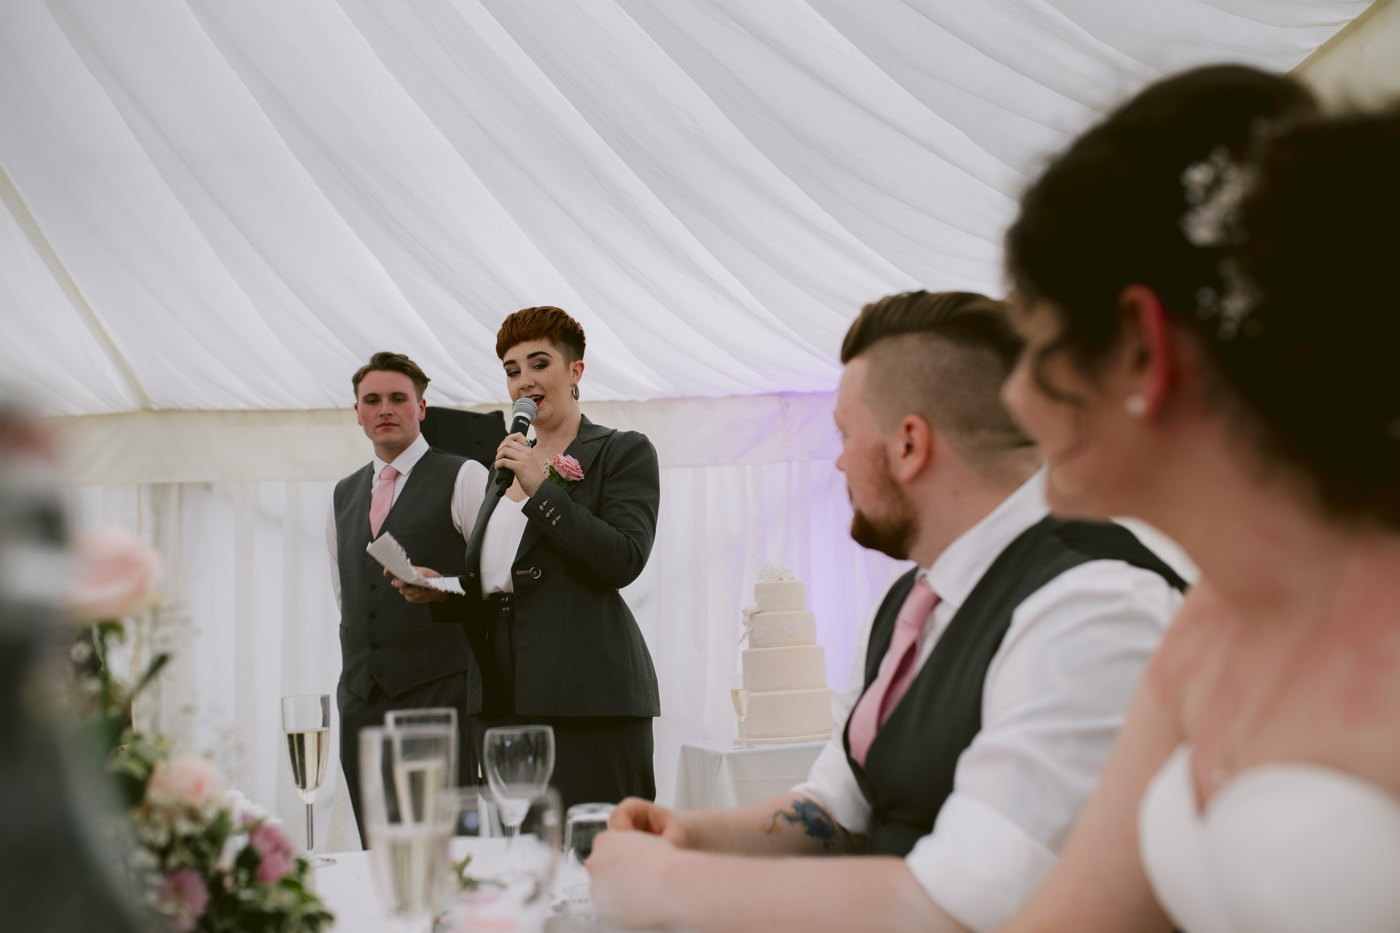 Bride and Groom at Table with Glasses listening Guest Speeches